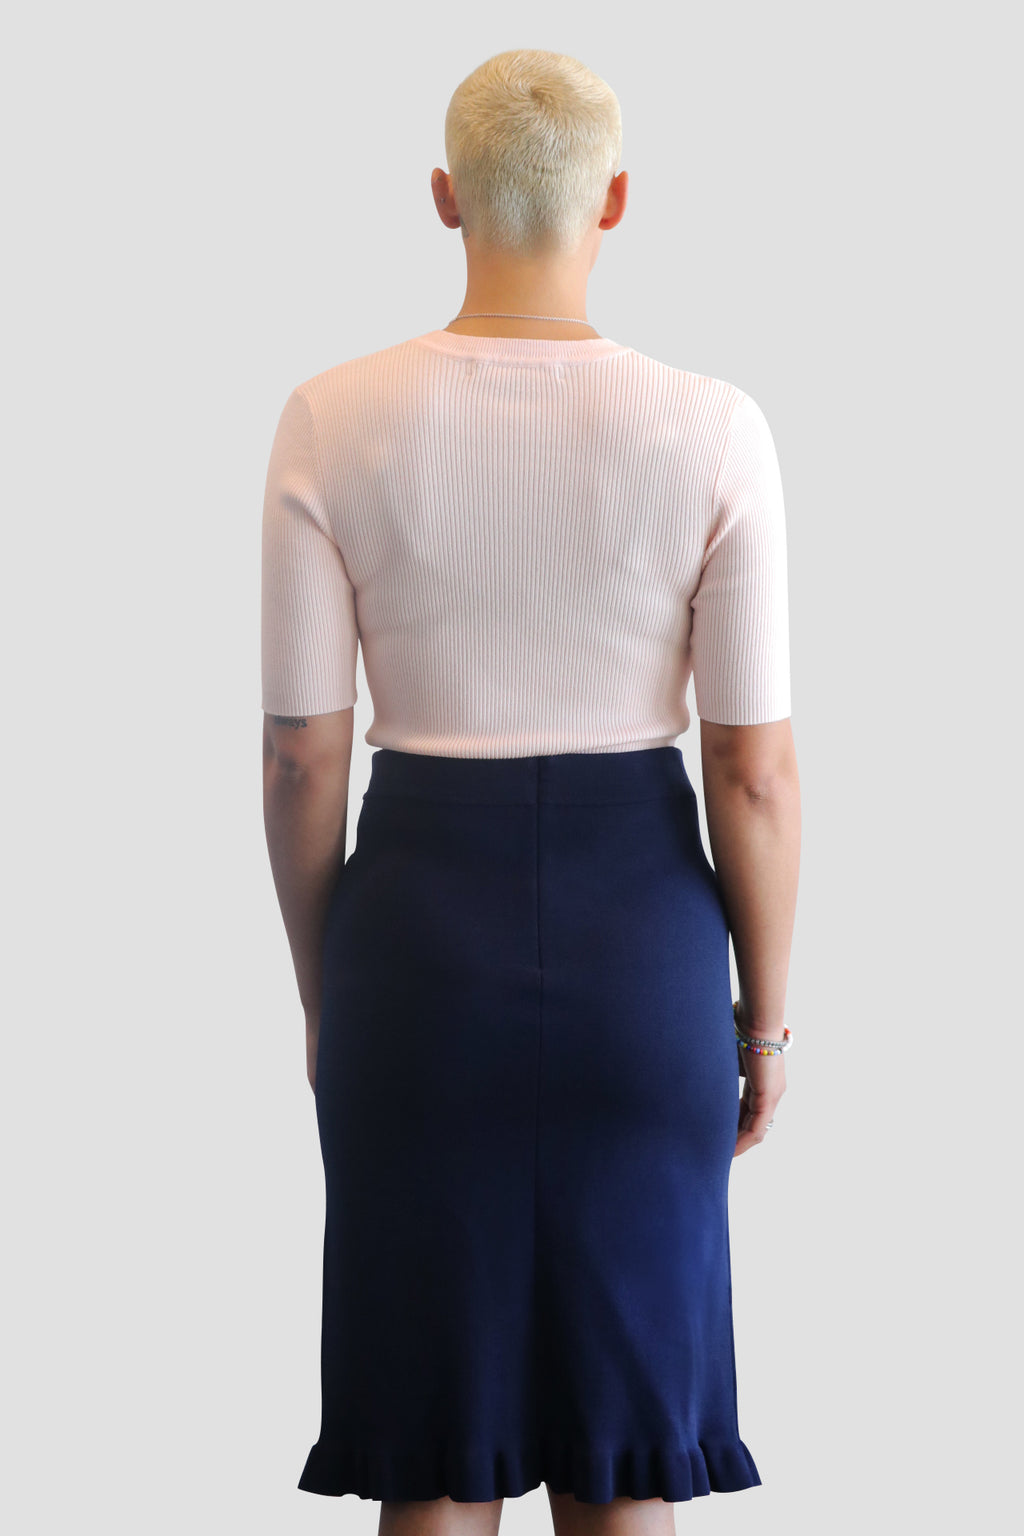 emma chai stretch knit skirt. stretch knit skirt. pencil skirt. ruffle skirt.